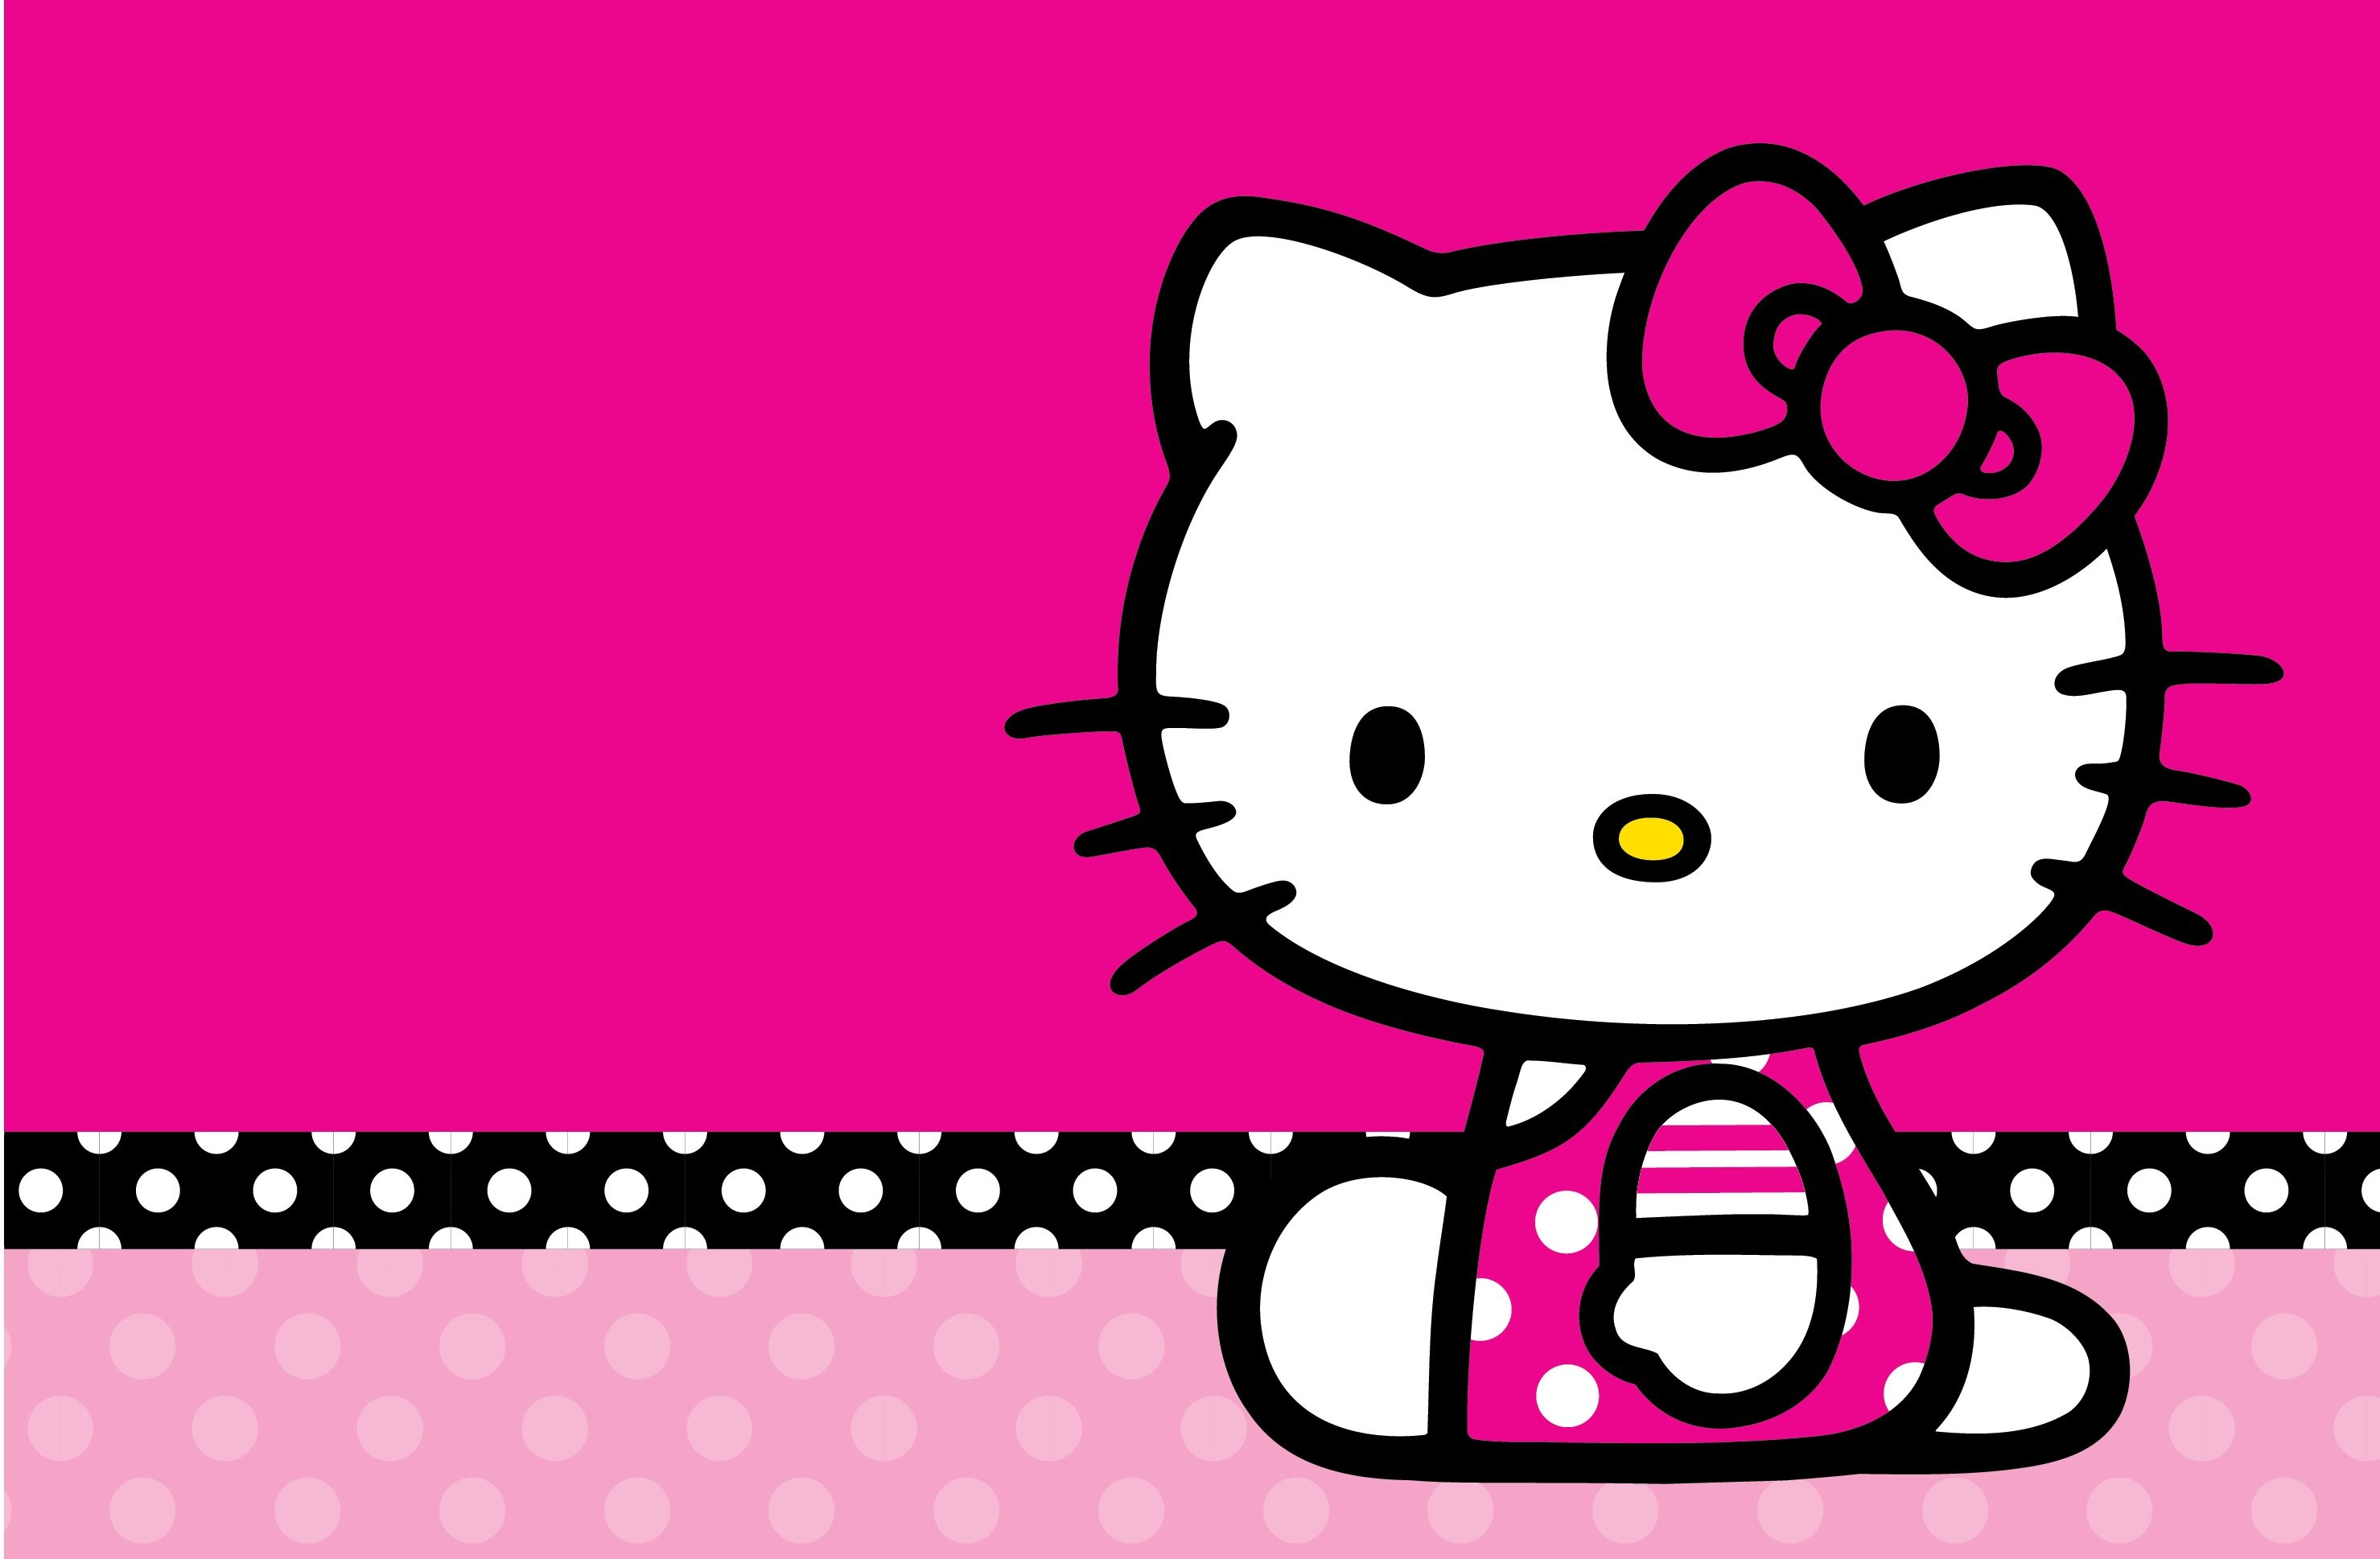 Simple Wallpaper Hello Kitty Donut - 585113  Perfect Image Reference_347517.jpg